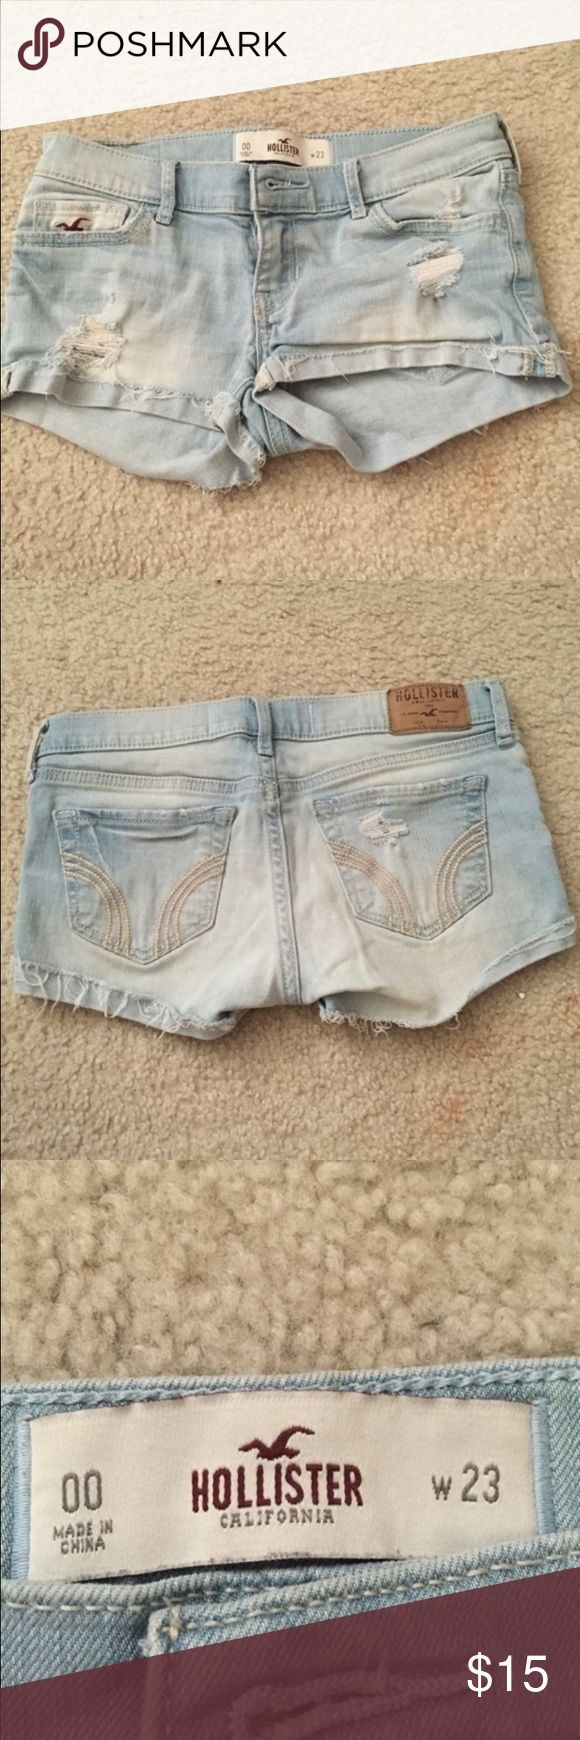 Hollister Jean Shorts Hollister Jean Shorts super cute! Perfect condition with no wear or tear Hollister Shorts